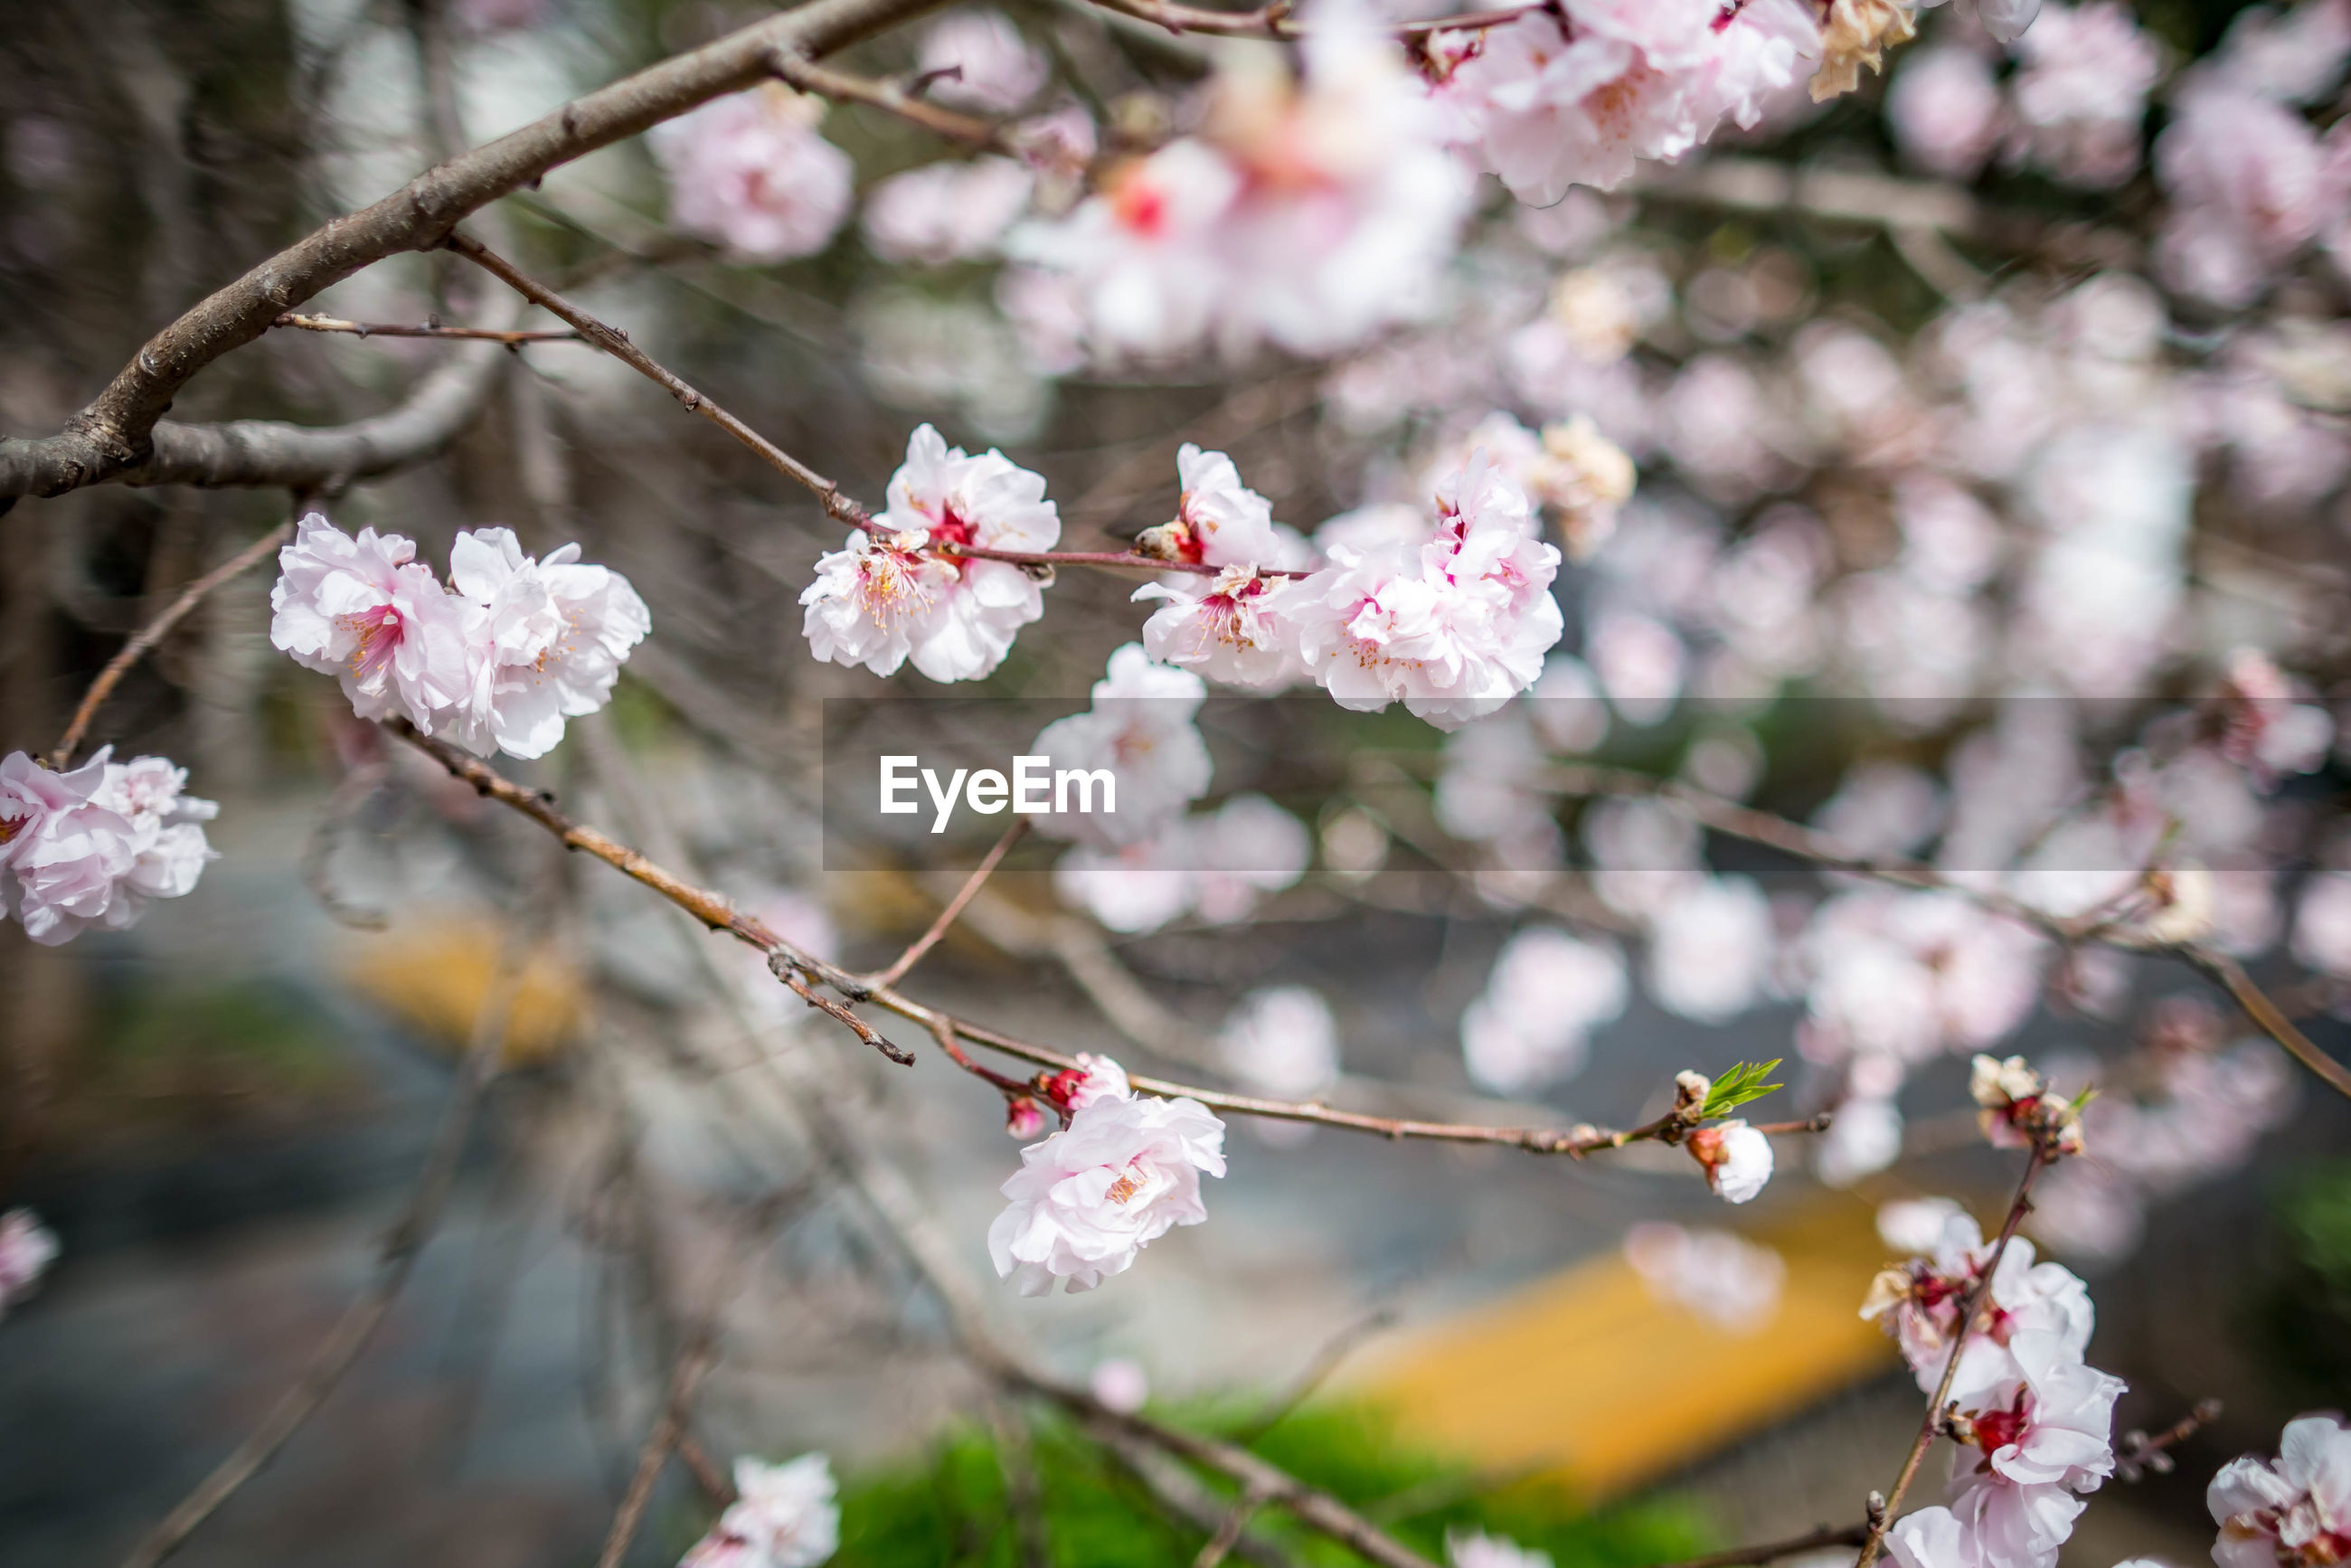 flower, flowering plant, plant, growth, fragility, vulnerability, beauty in nature, tree, freshness, branch, springtime, pink color, close-up, cherry blossom, blossom, day, nature, no people, focus on foreground, petal, cherry tree, flower head, outdoors, pollen, plum blossom, spring